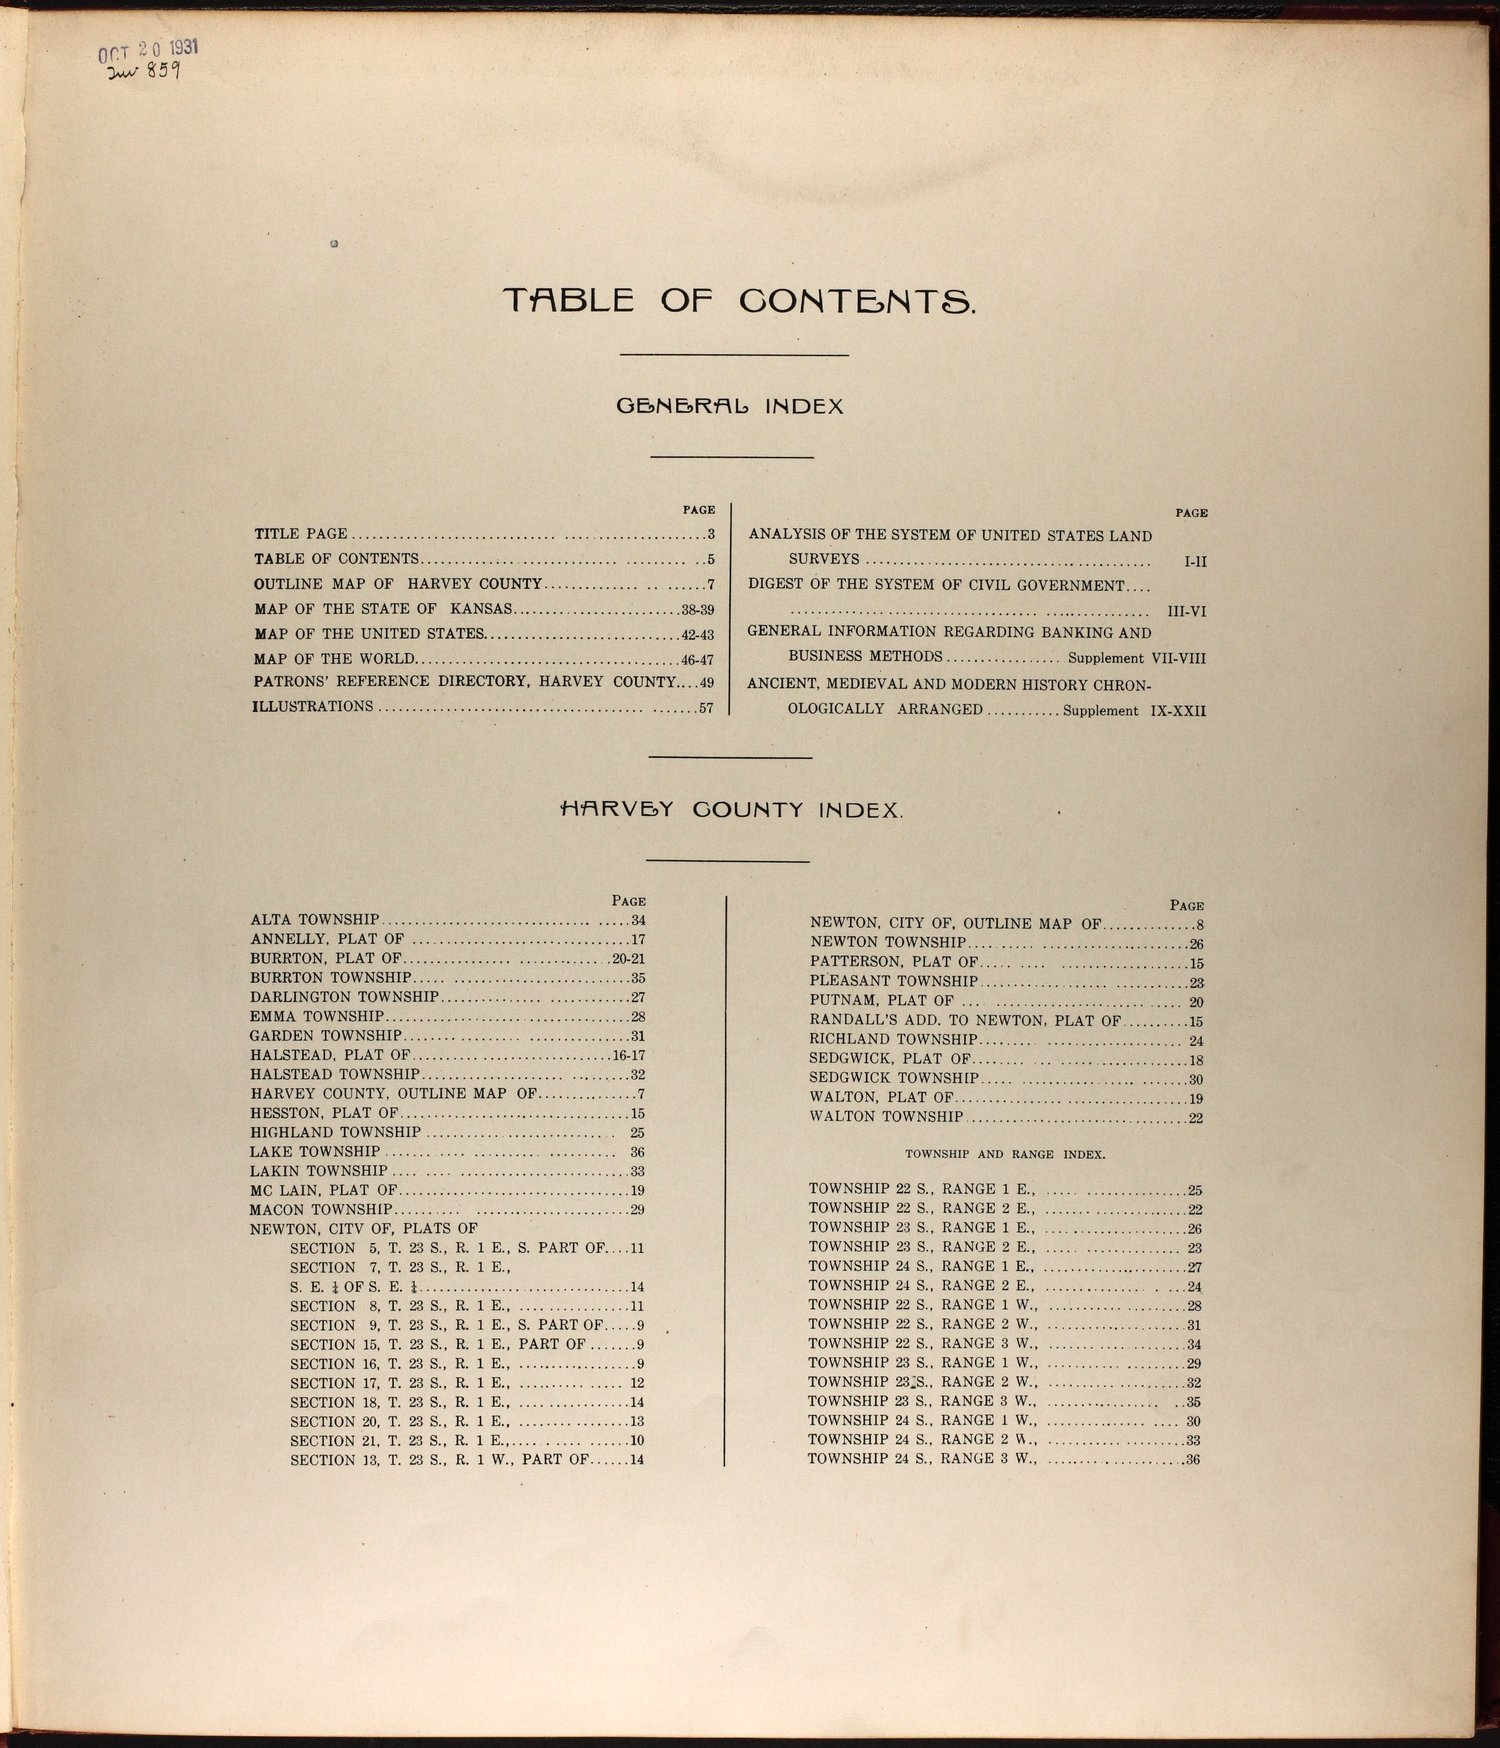 Standard atlas of Harvey County, Kansas - Table of Contents